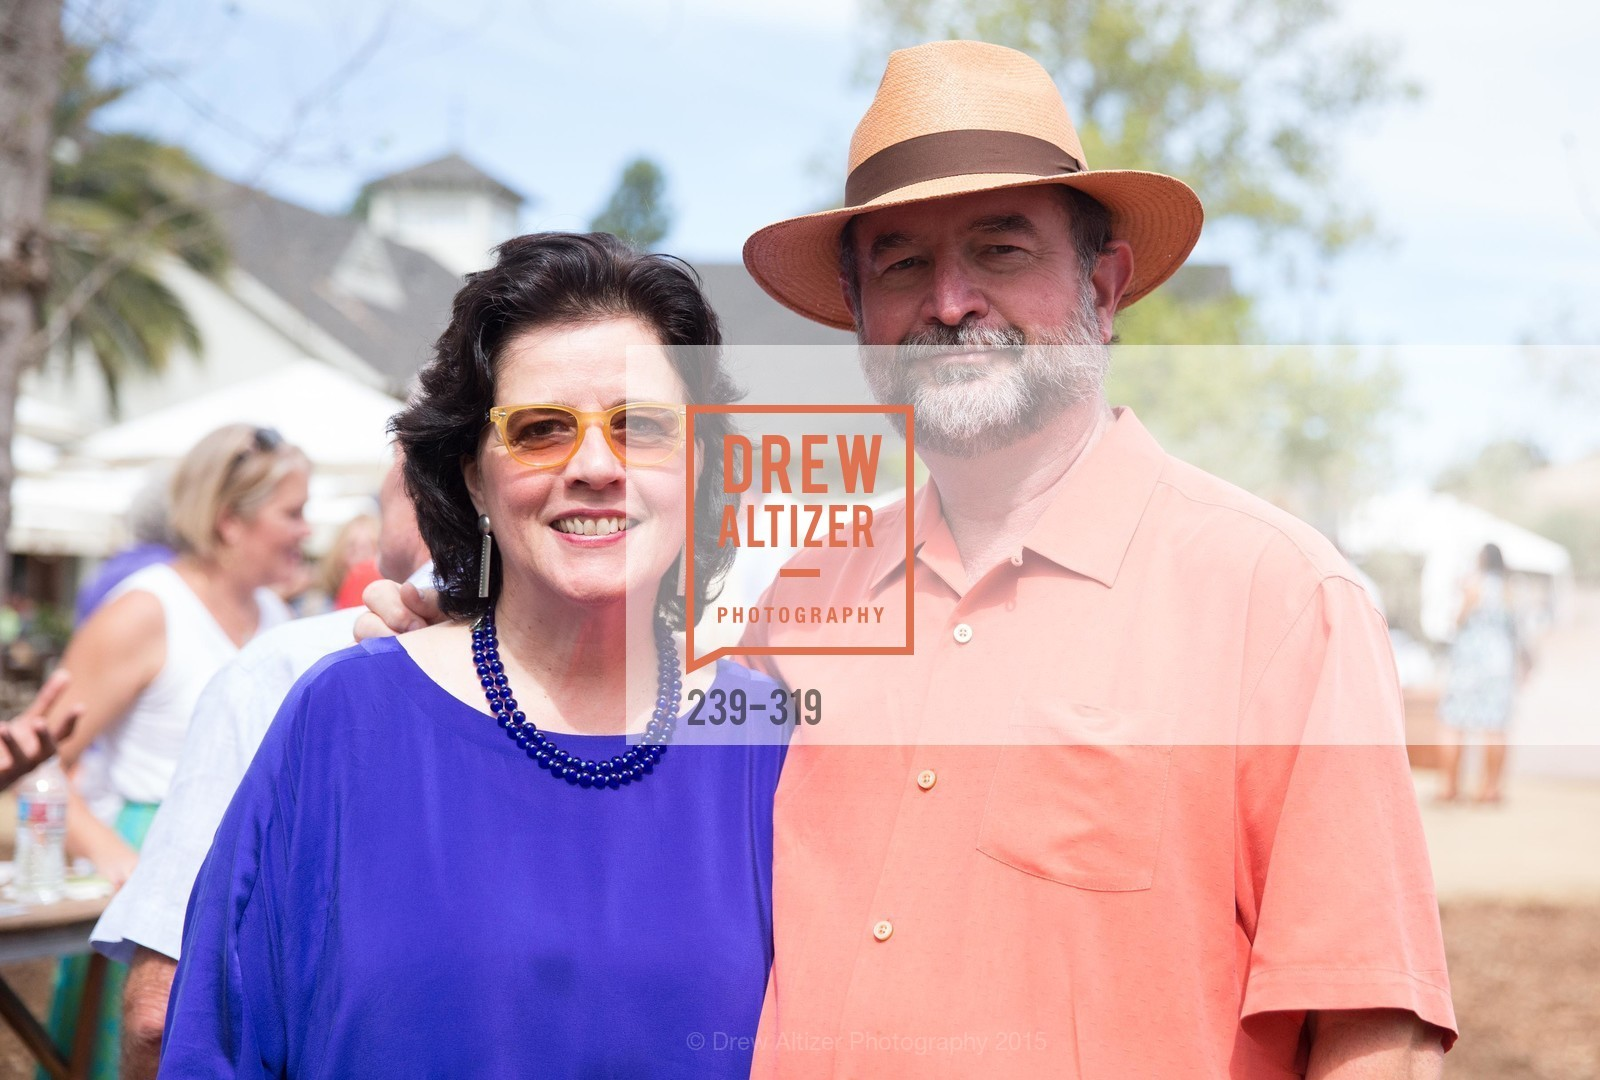 Becky Saeger, Tom Graves, Fall for Art: ODC at McEvoy Ranch, McEvoy Ranch. 5935 Red Hill Road, September 27th, 2015,Drew Altizer, Drew Altizer Photography, full-service agency, private events, San Francisco photographer, photographer california